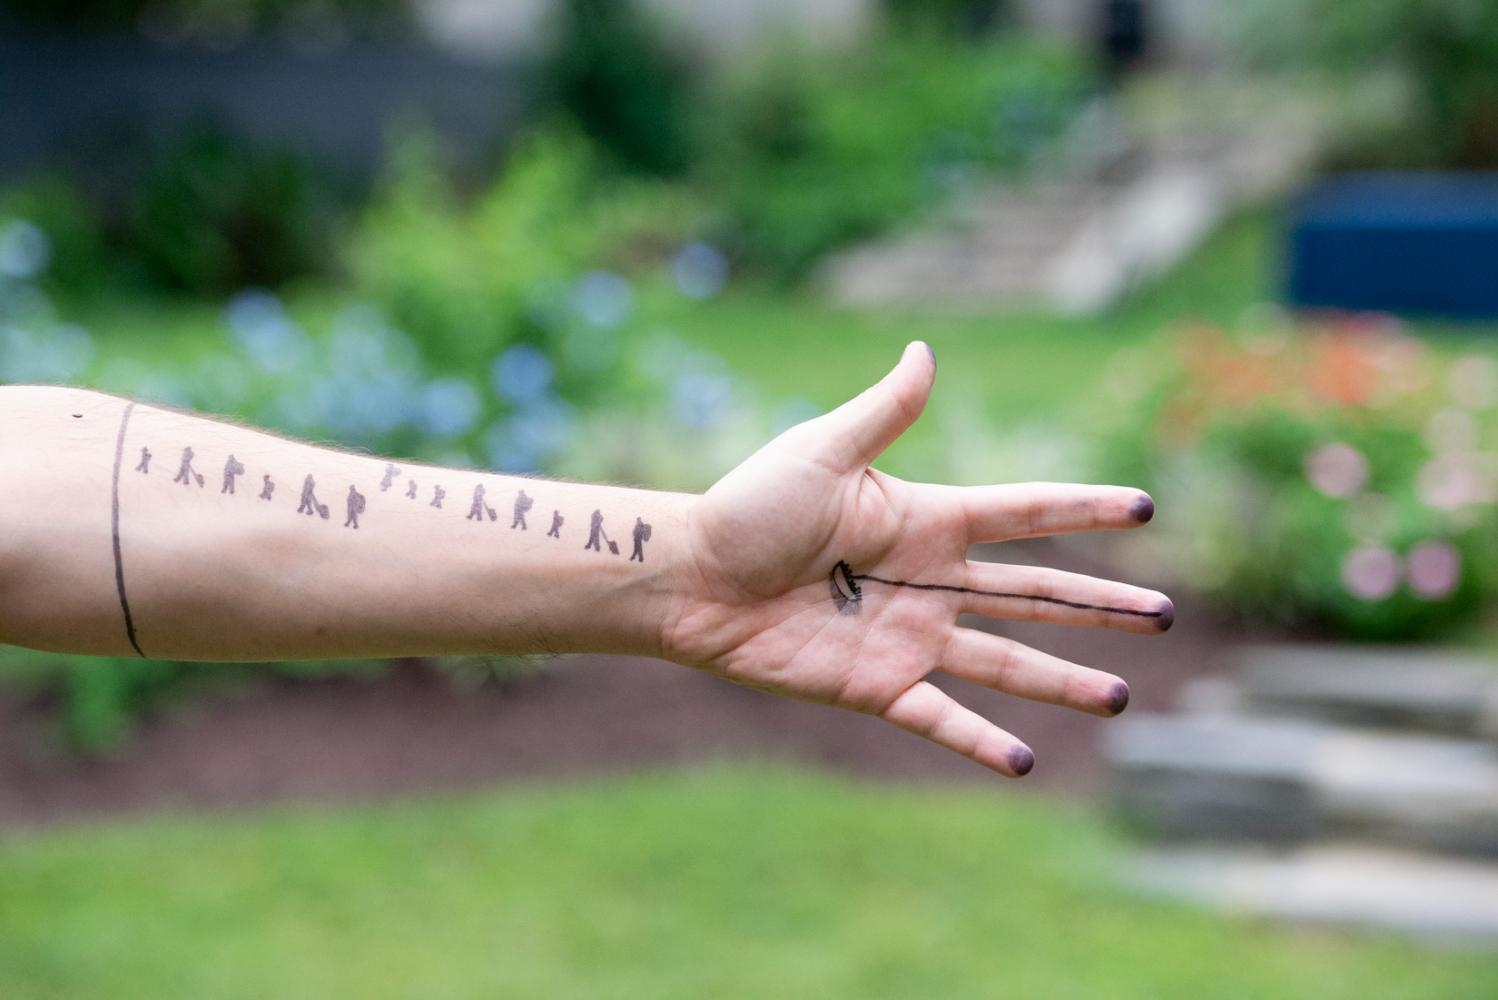 As Far As My Fingertips Take Me | Tania El Khoury